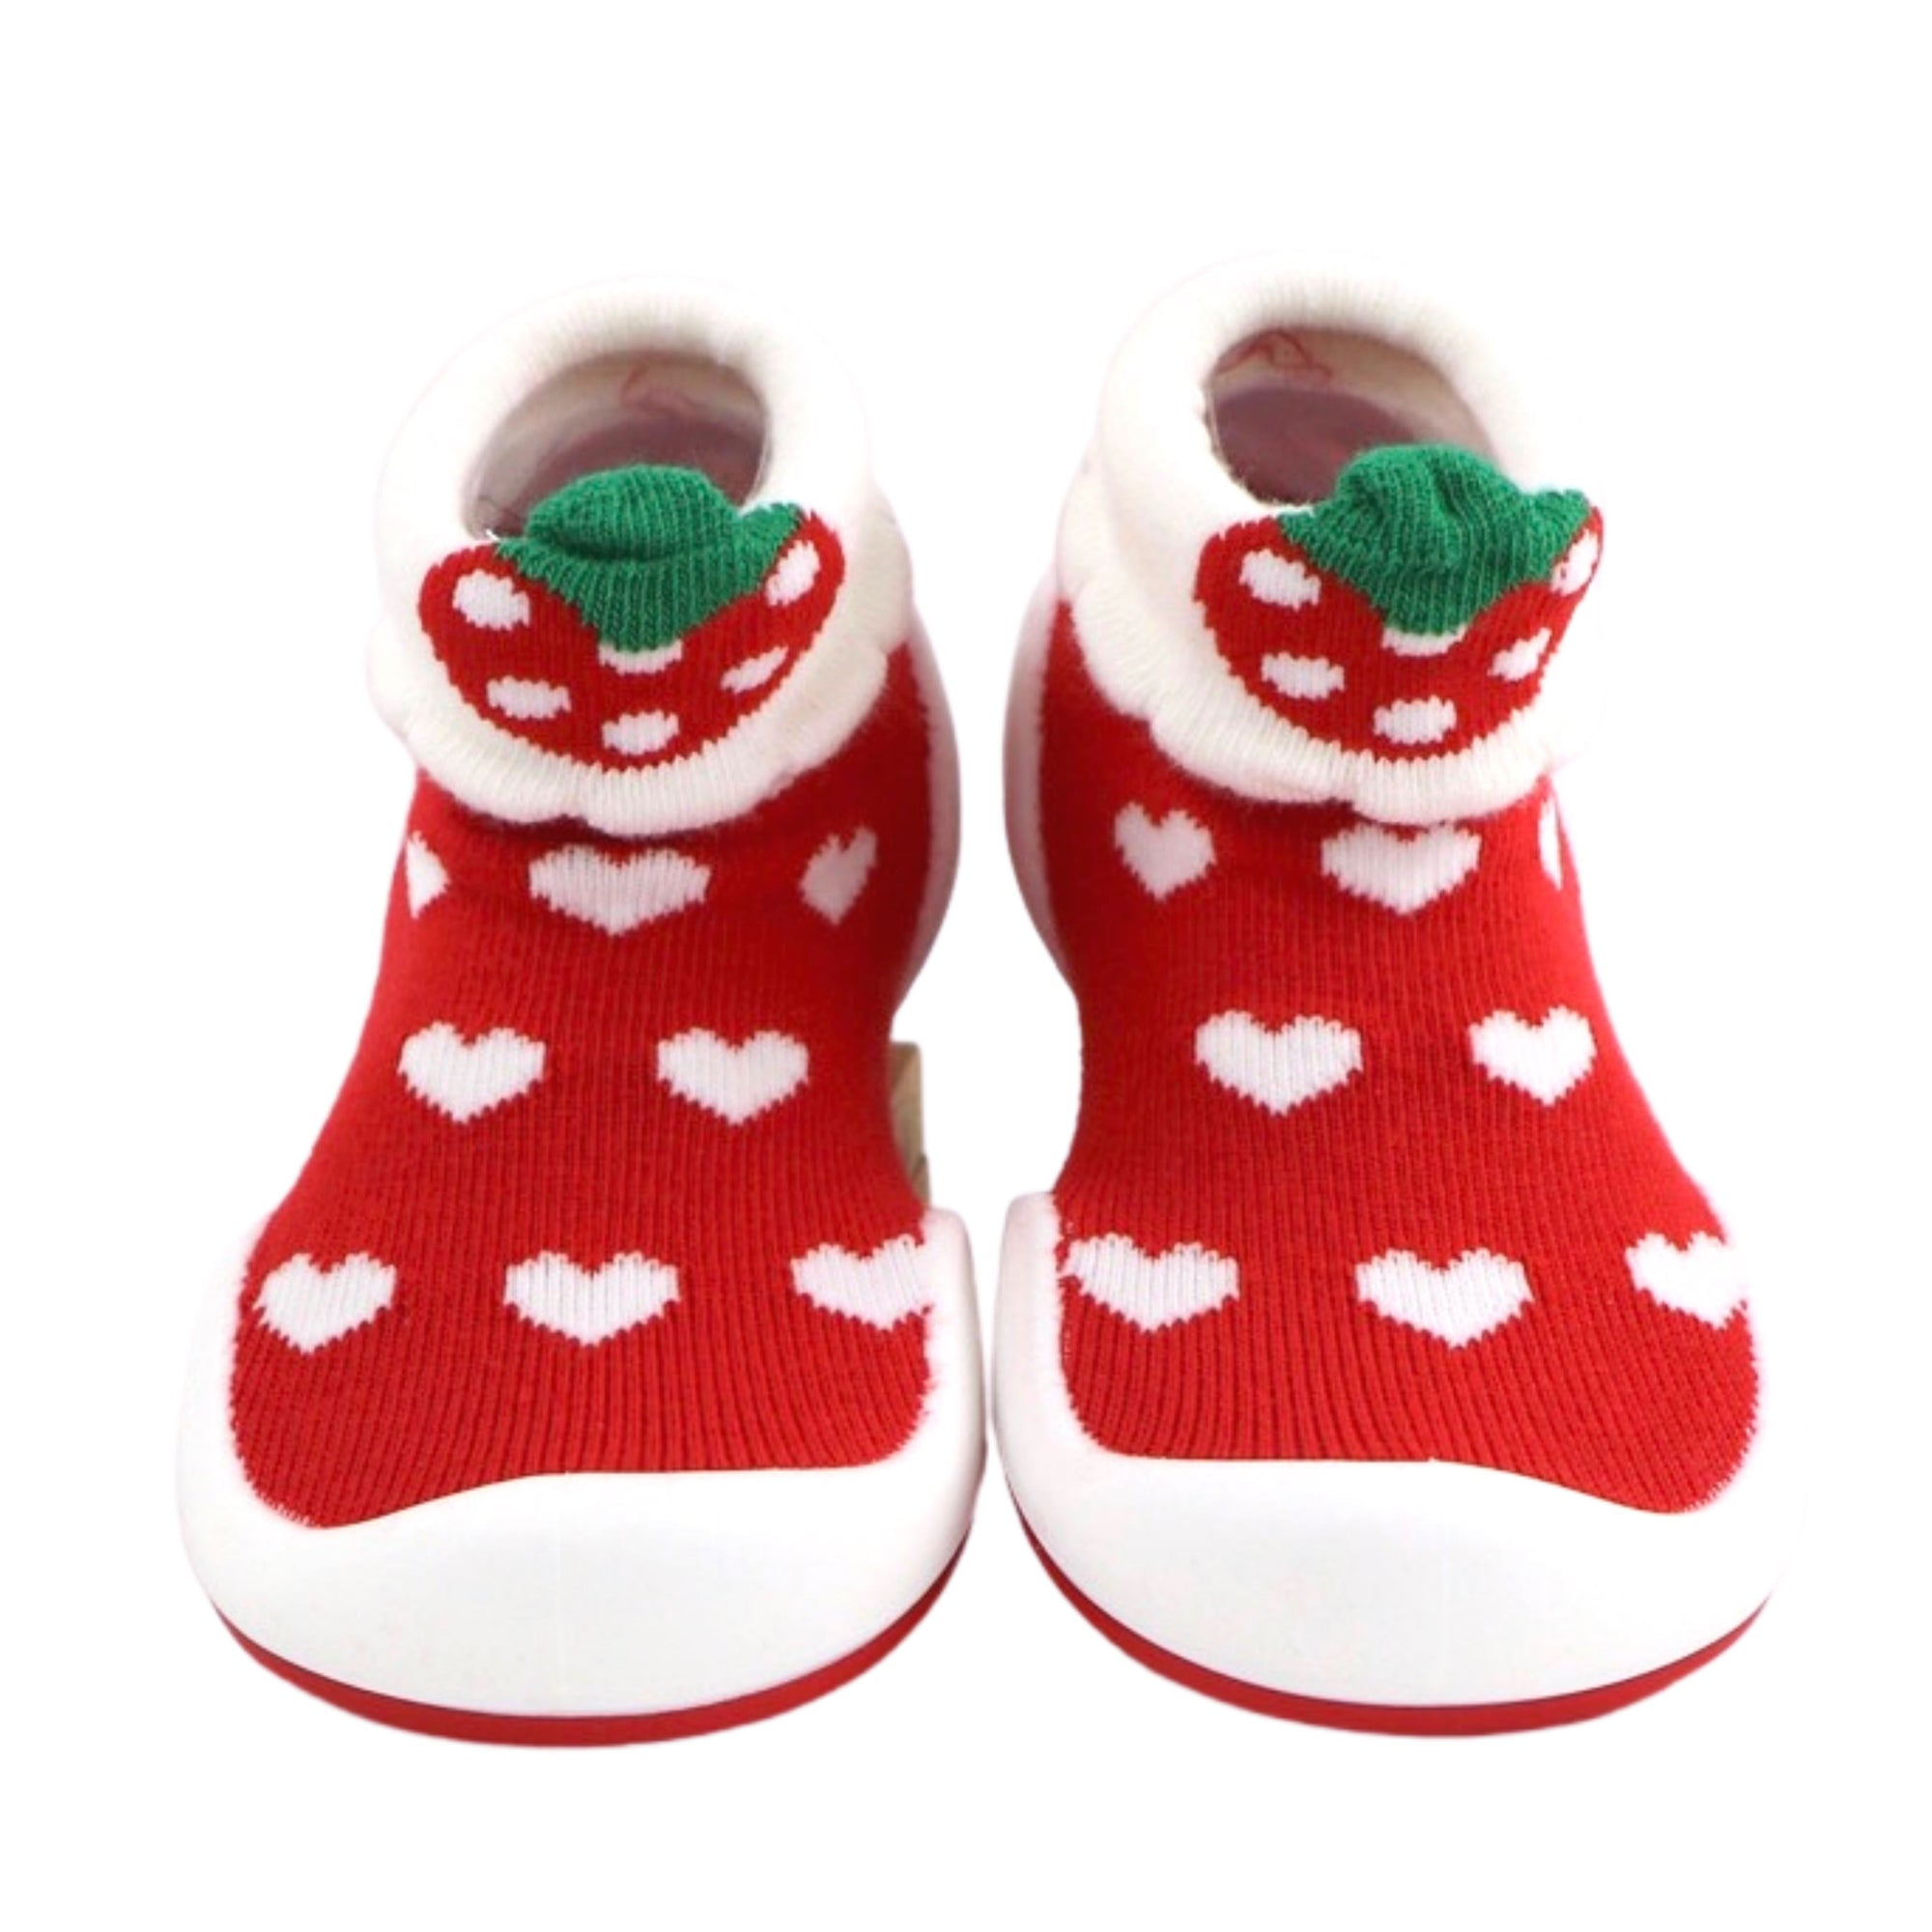 Hi Strawberry Shoes